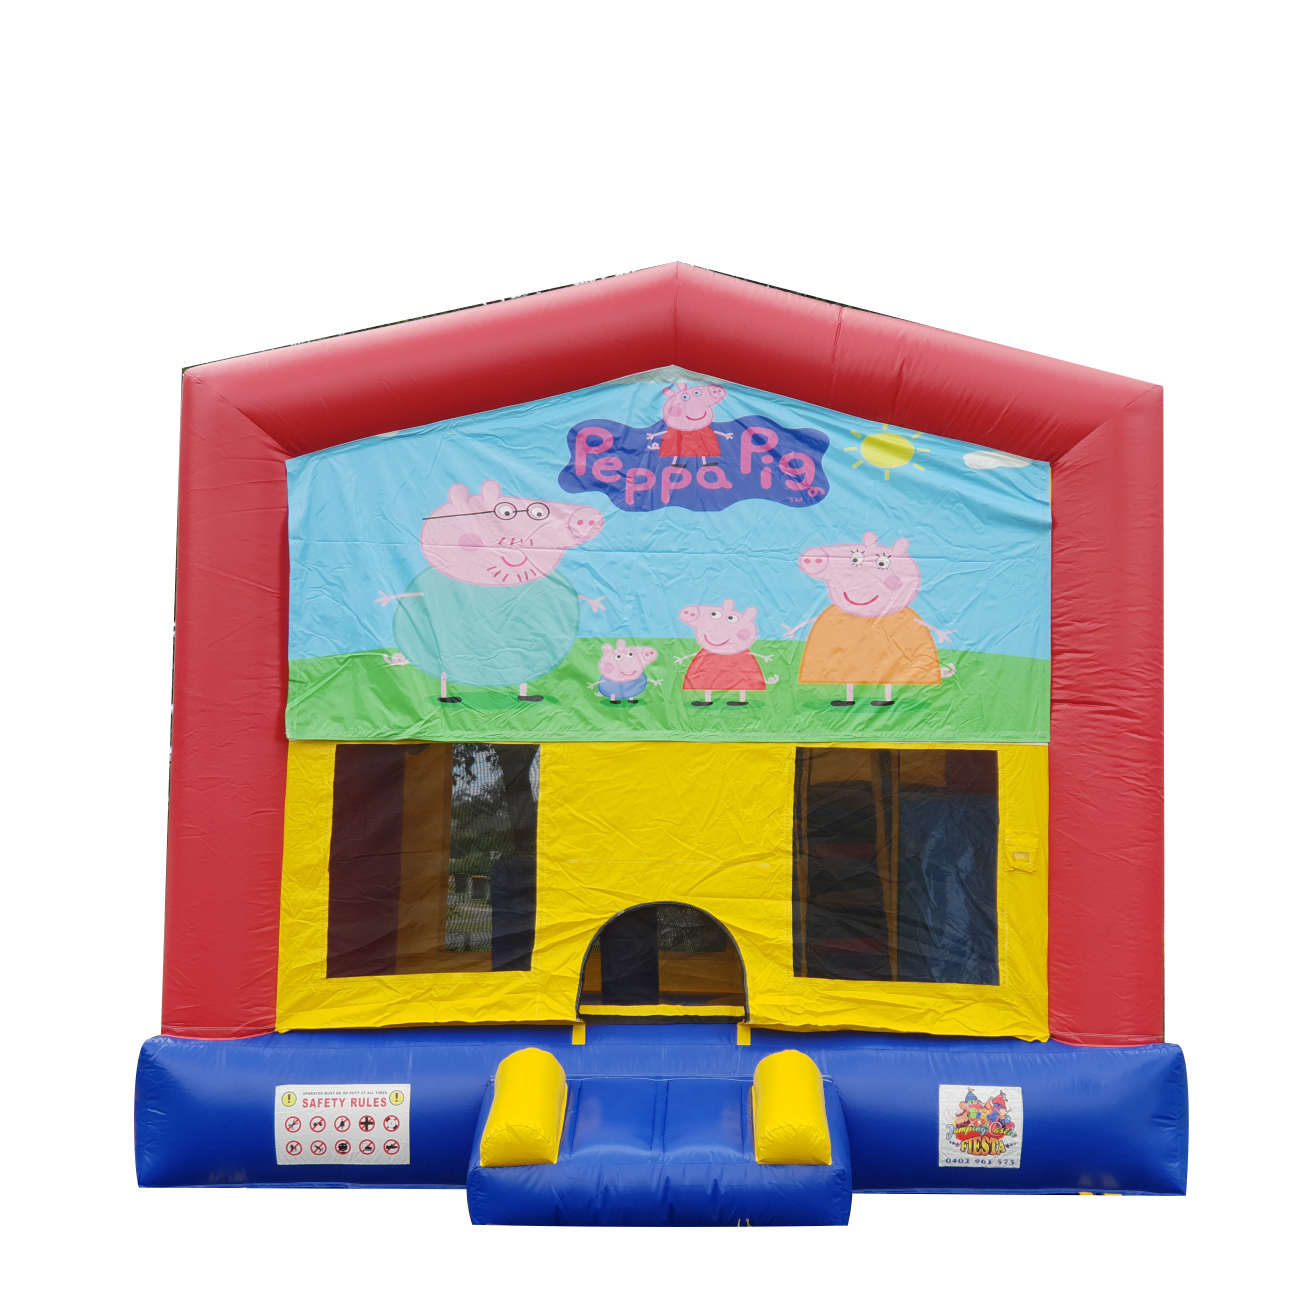 PEPPER PIG CASTLE